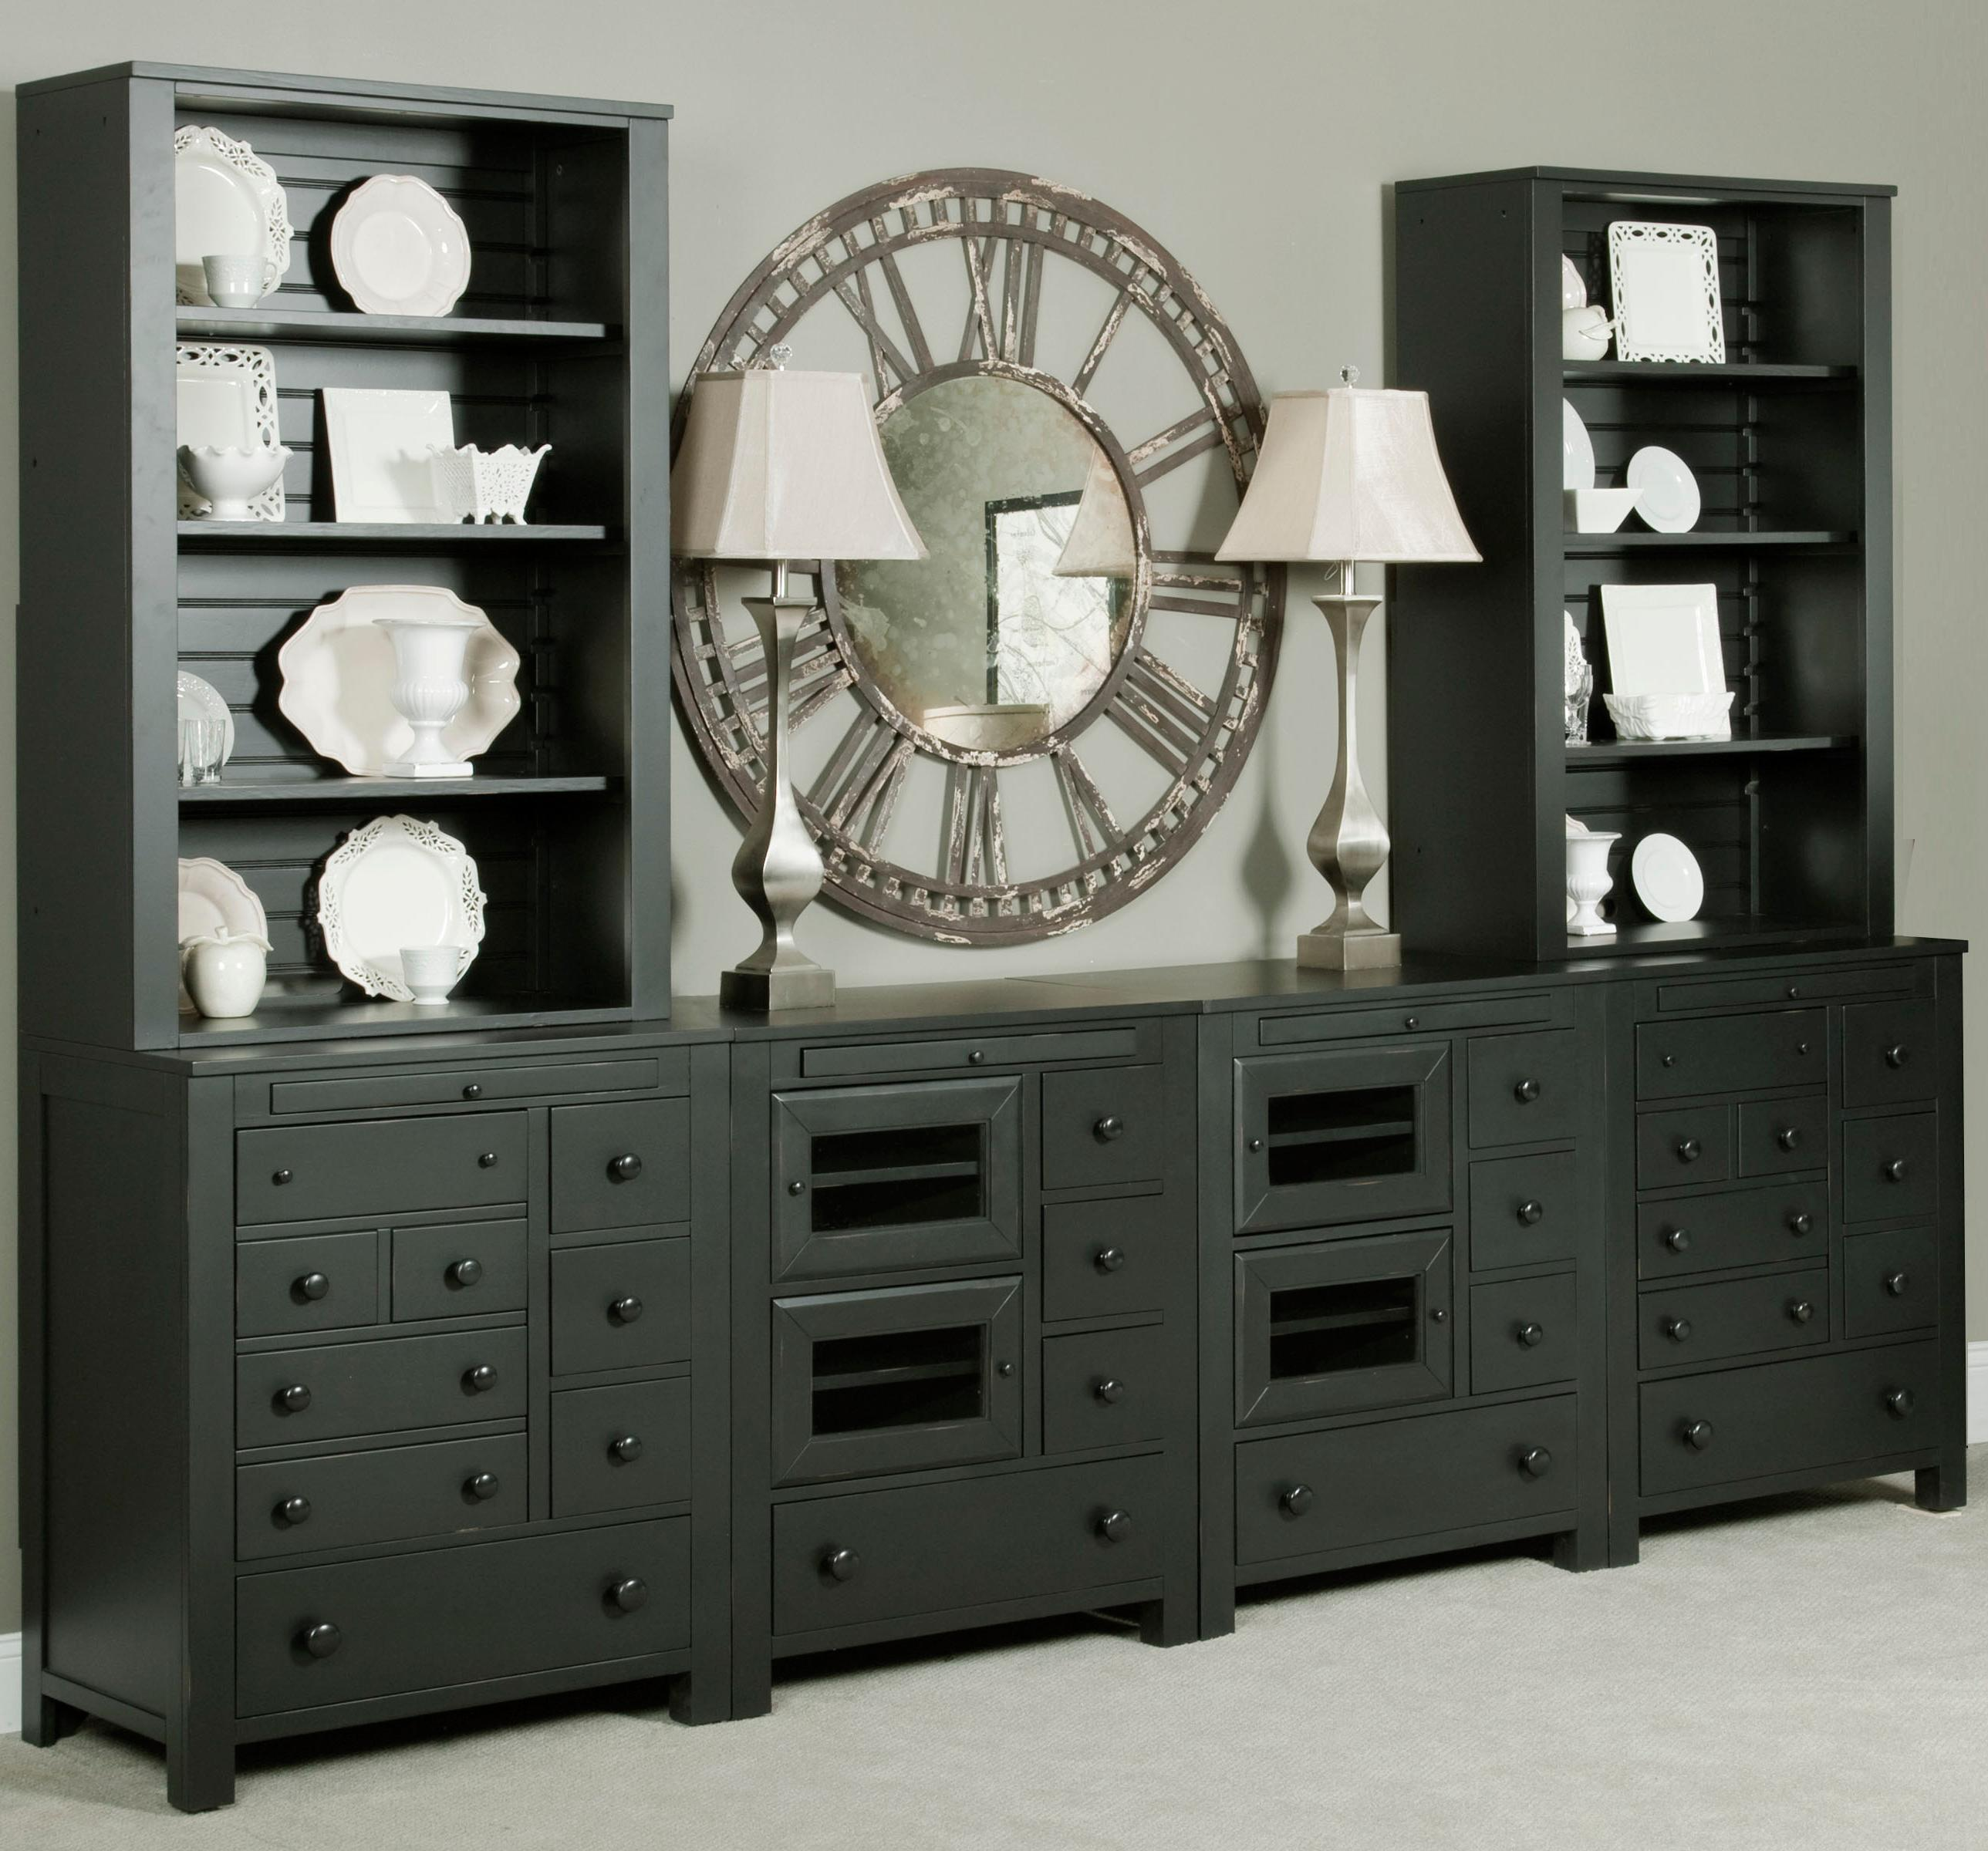 Broyhill Furniture New Vintage 7-Drawer Dresser with Jewelry Tray ...